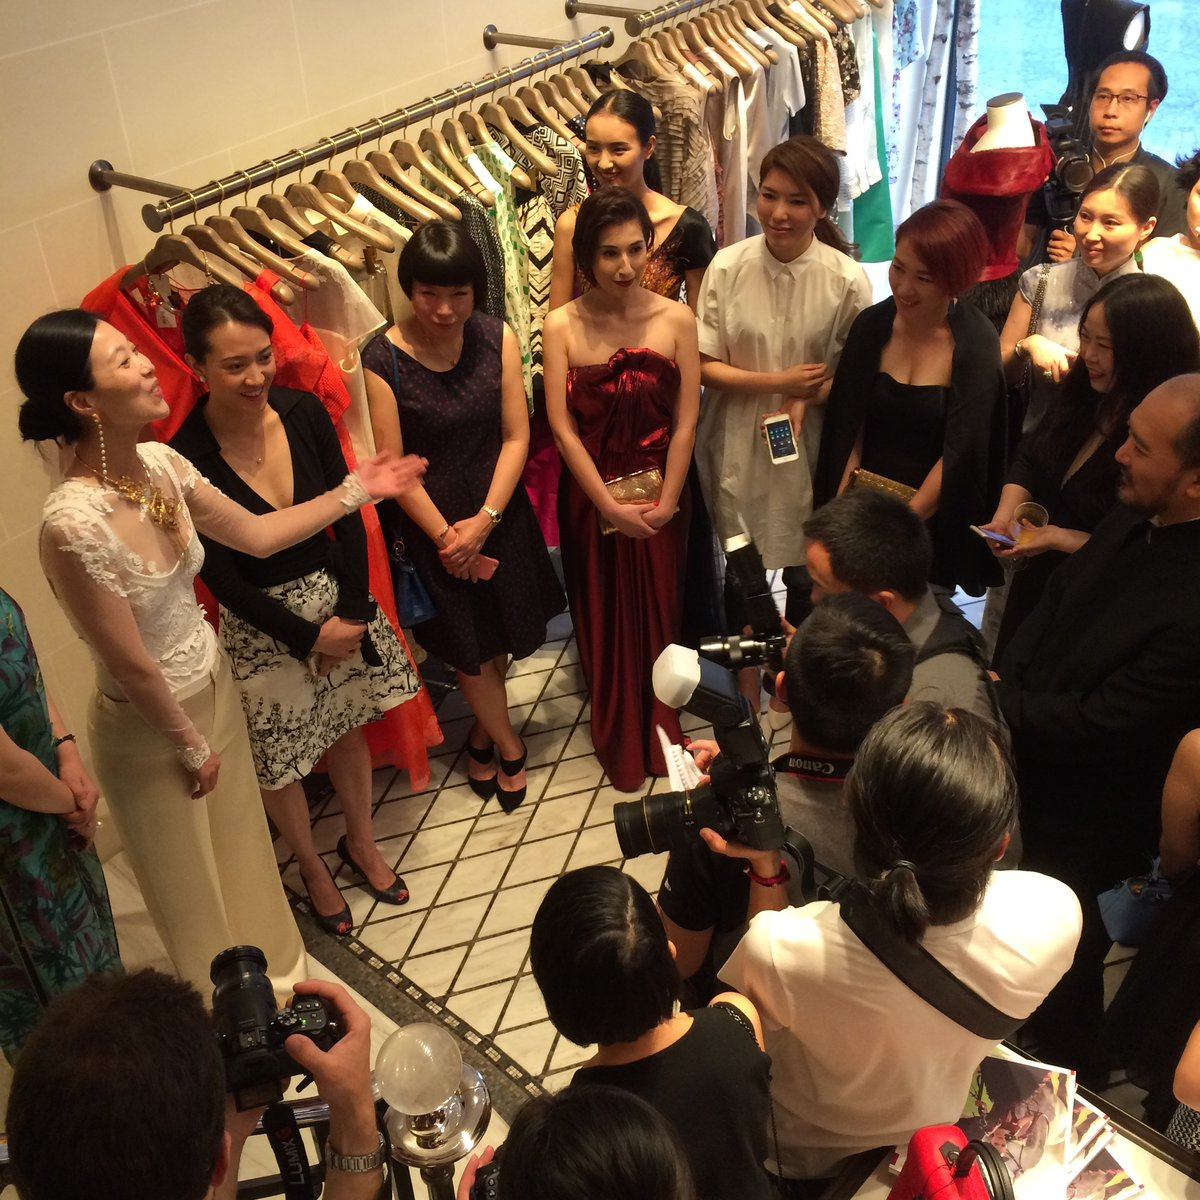 asvof-2015-07-05-10_chinese_designers_in_paris_showroom_and_currently_on_exhibition_at_les_suites-diane_pernet-1934321098.jpg